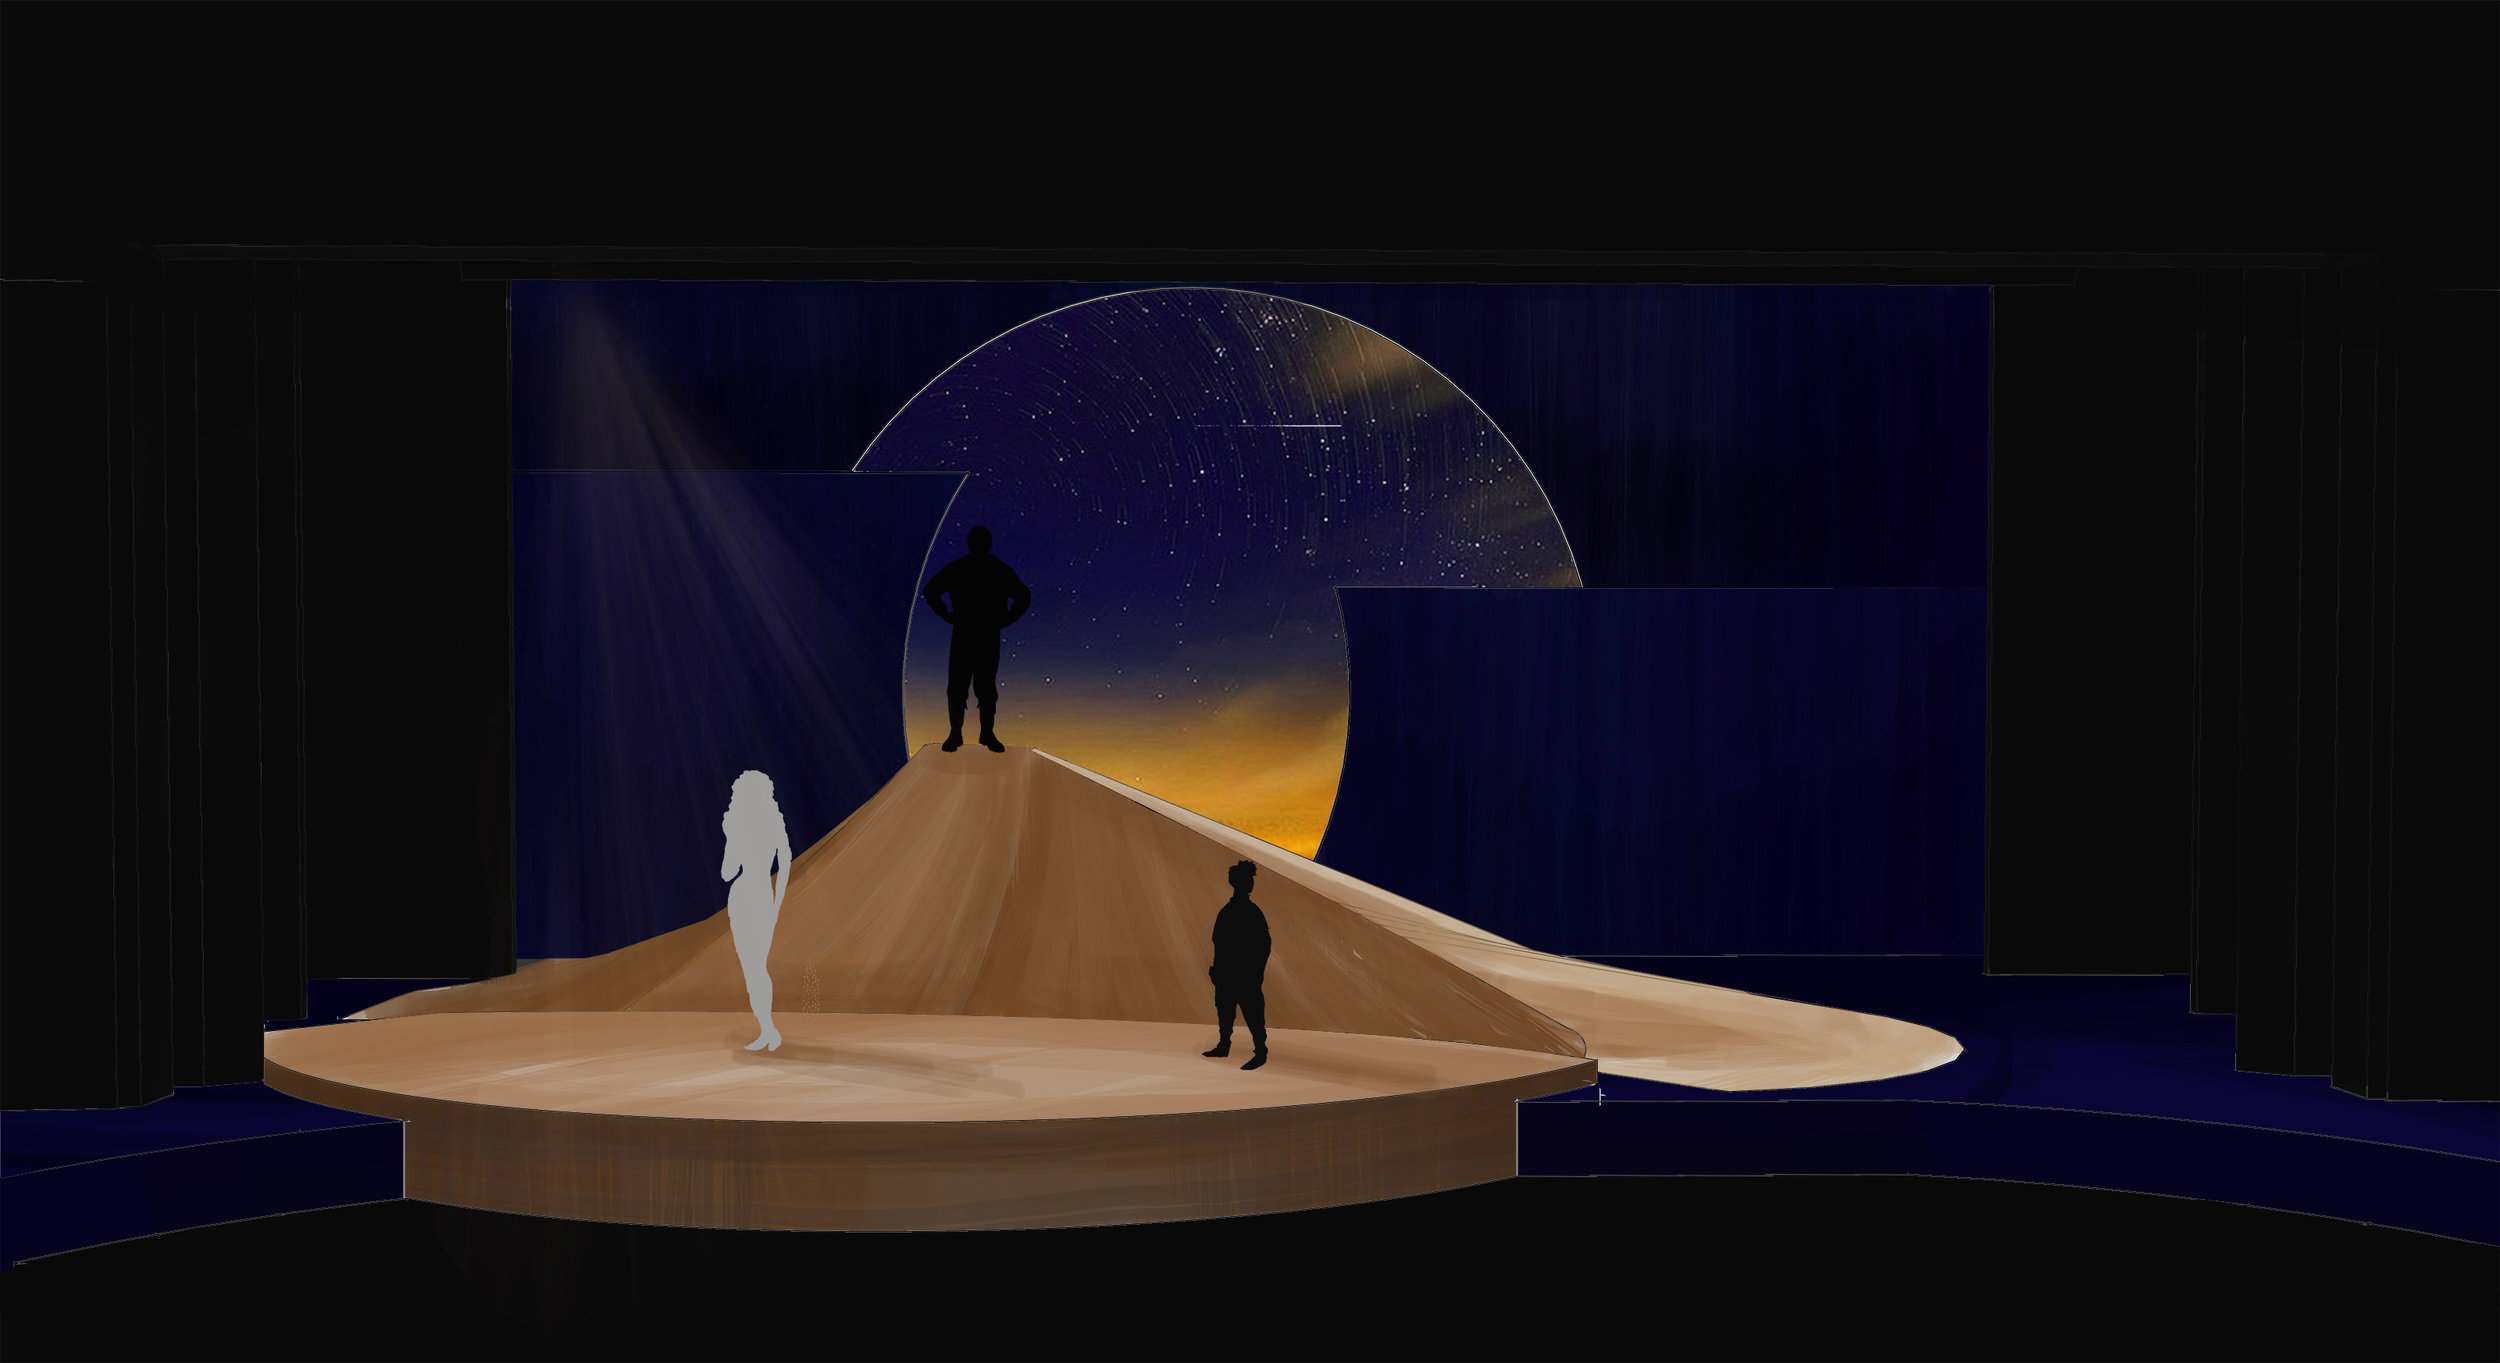 Theatre rendering for 'The Little Prince' by John Scoullar